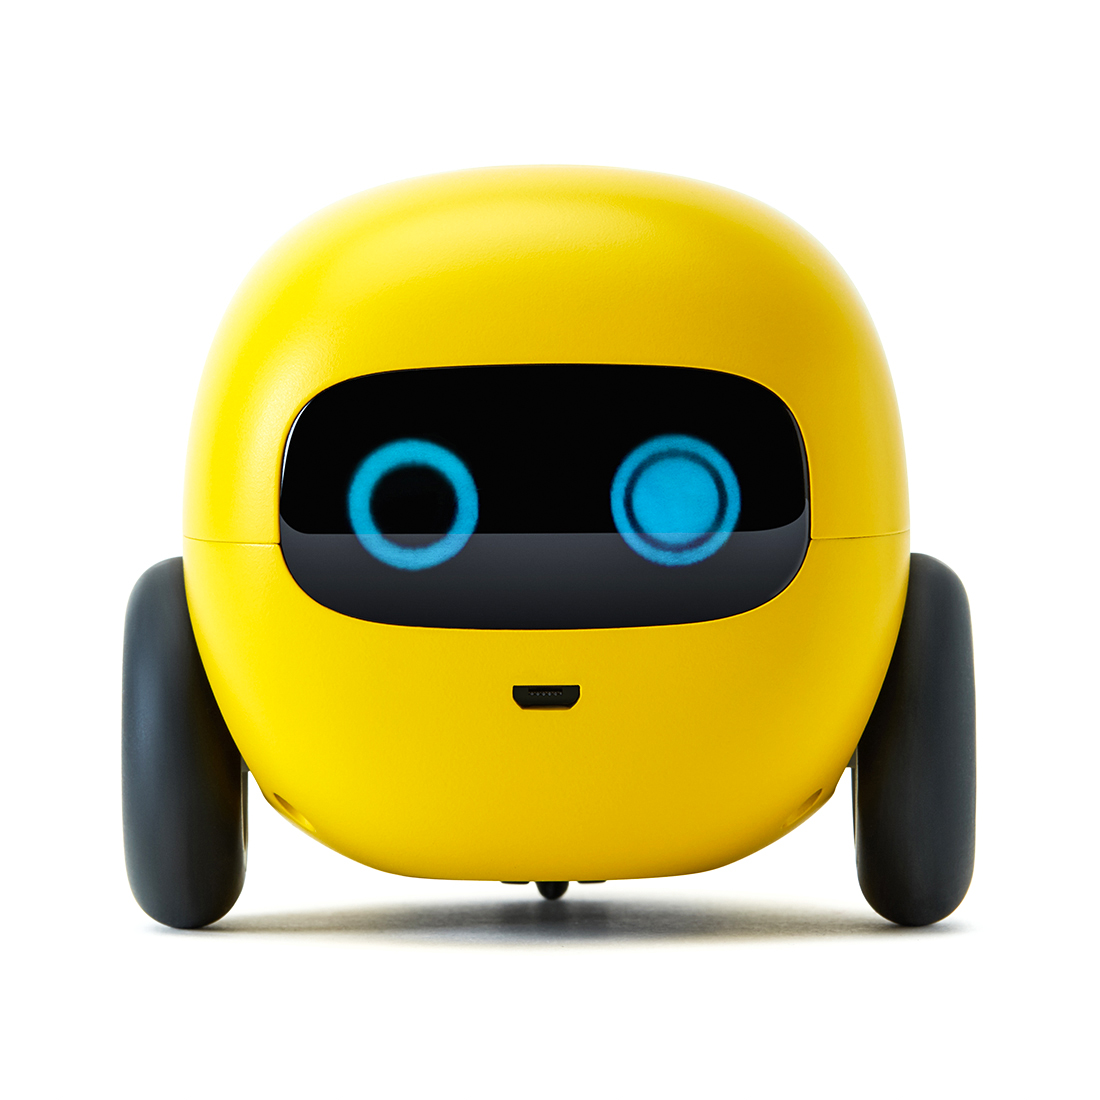 Mangobot Visual No Screen Type Enlightenment Building Block Secretly Teaches Coding Steam Robot Toy For Children - Basic/Advanced Edition